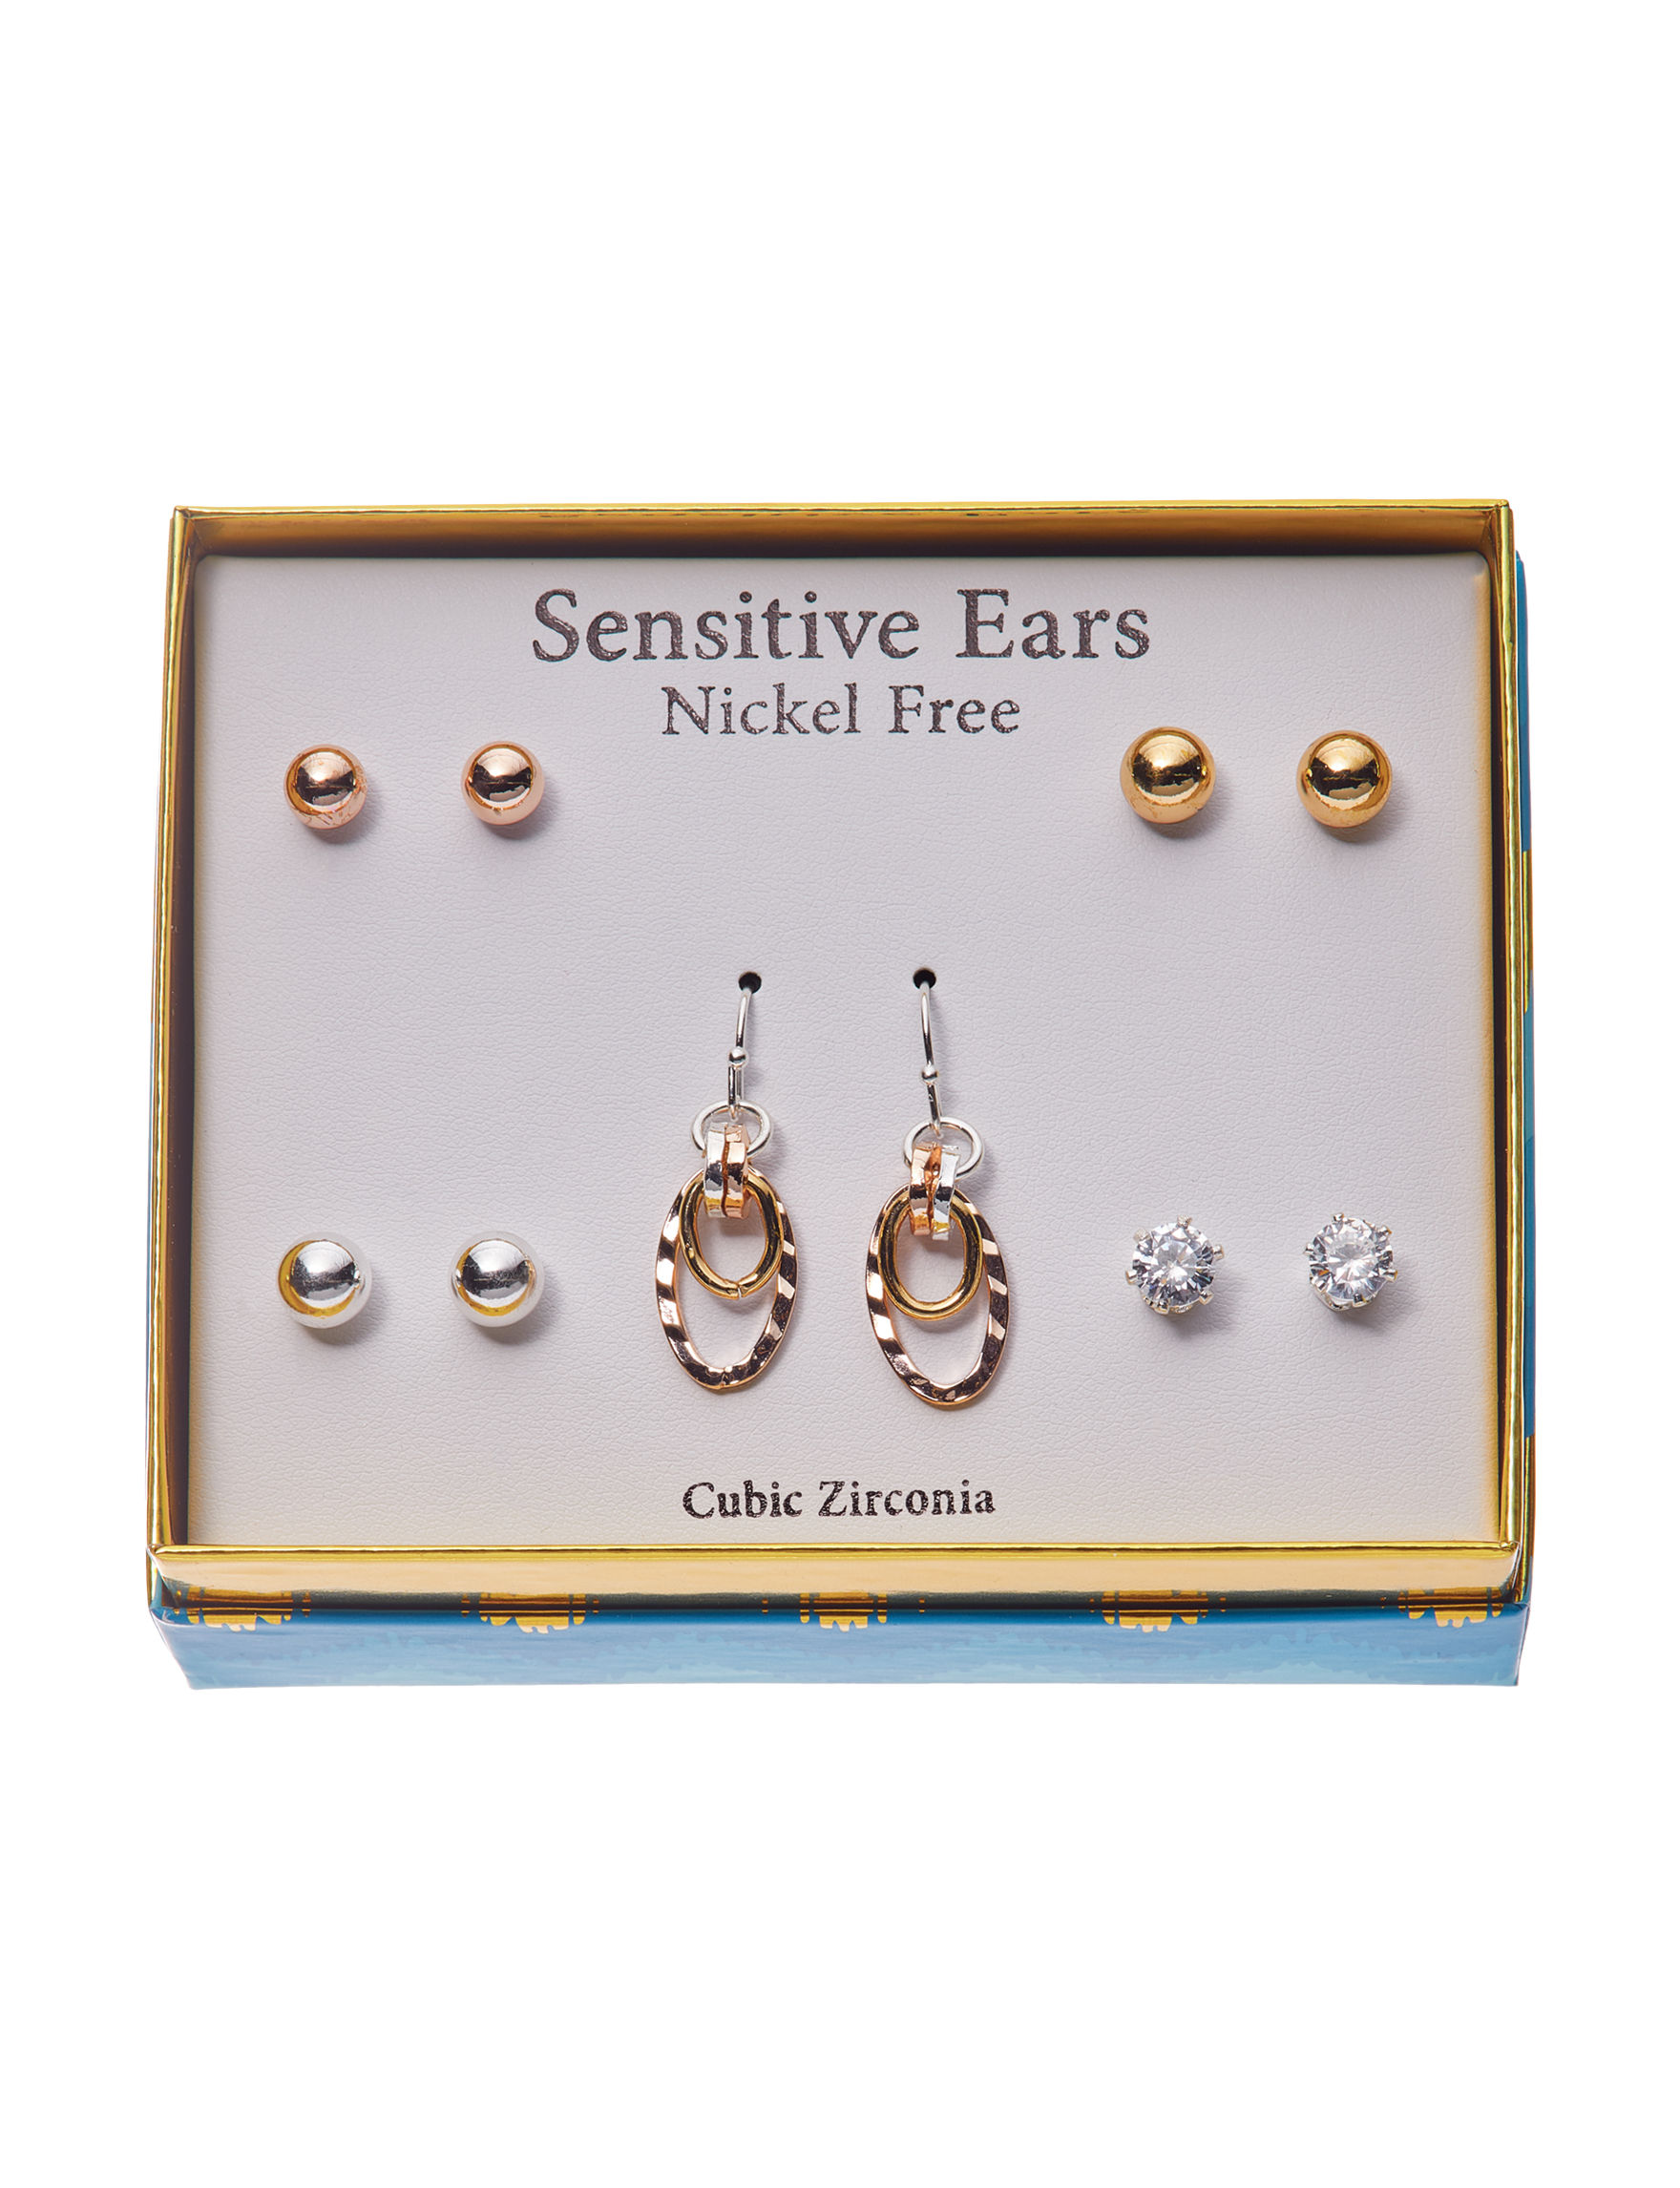 Fashion Accents Gold / Multi Earrings Fashion Jewelry